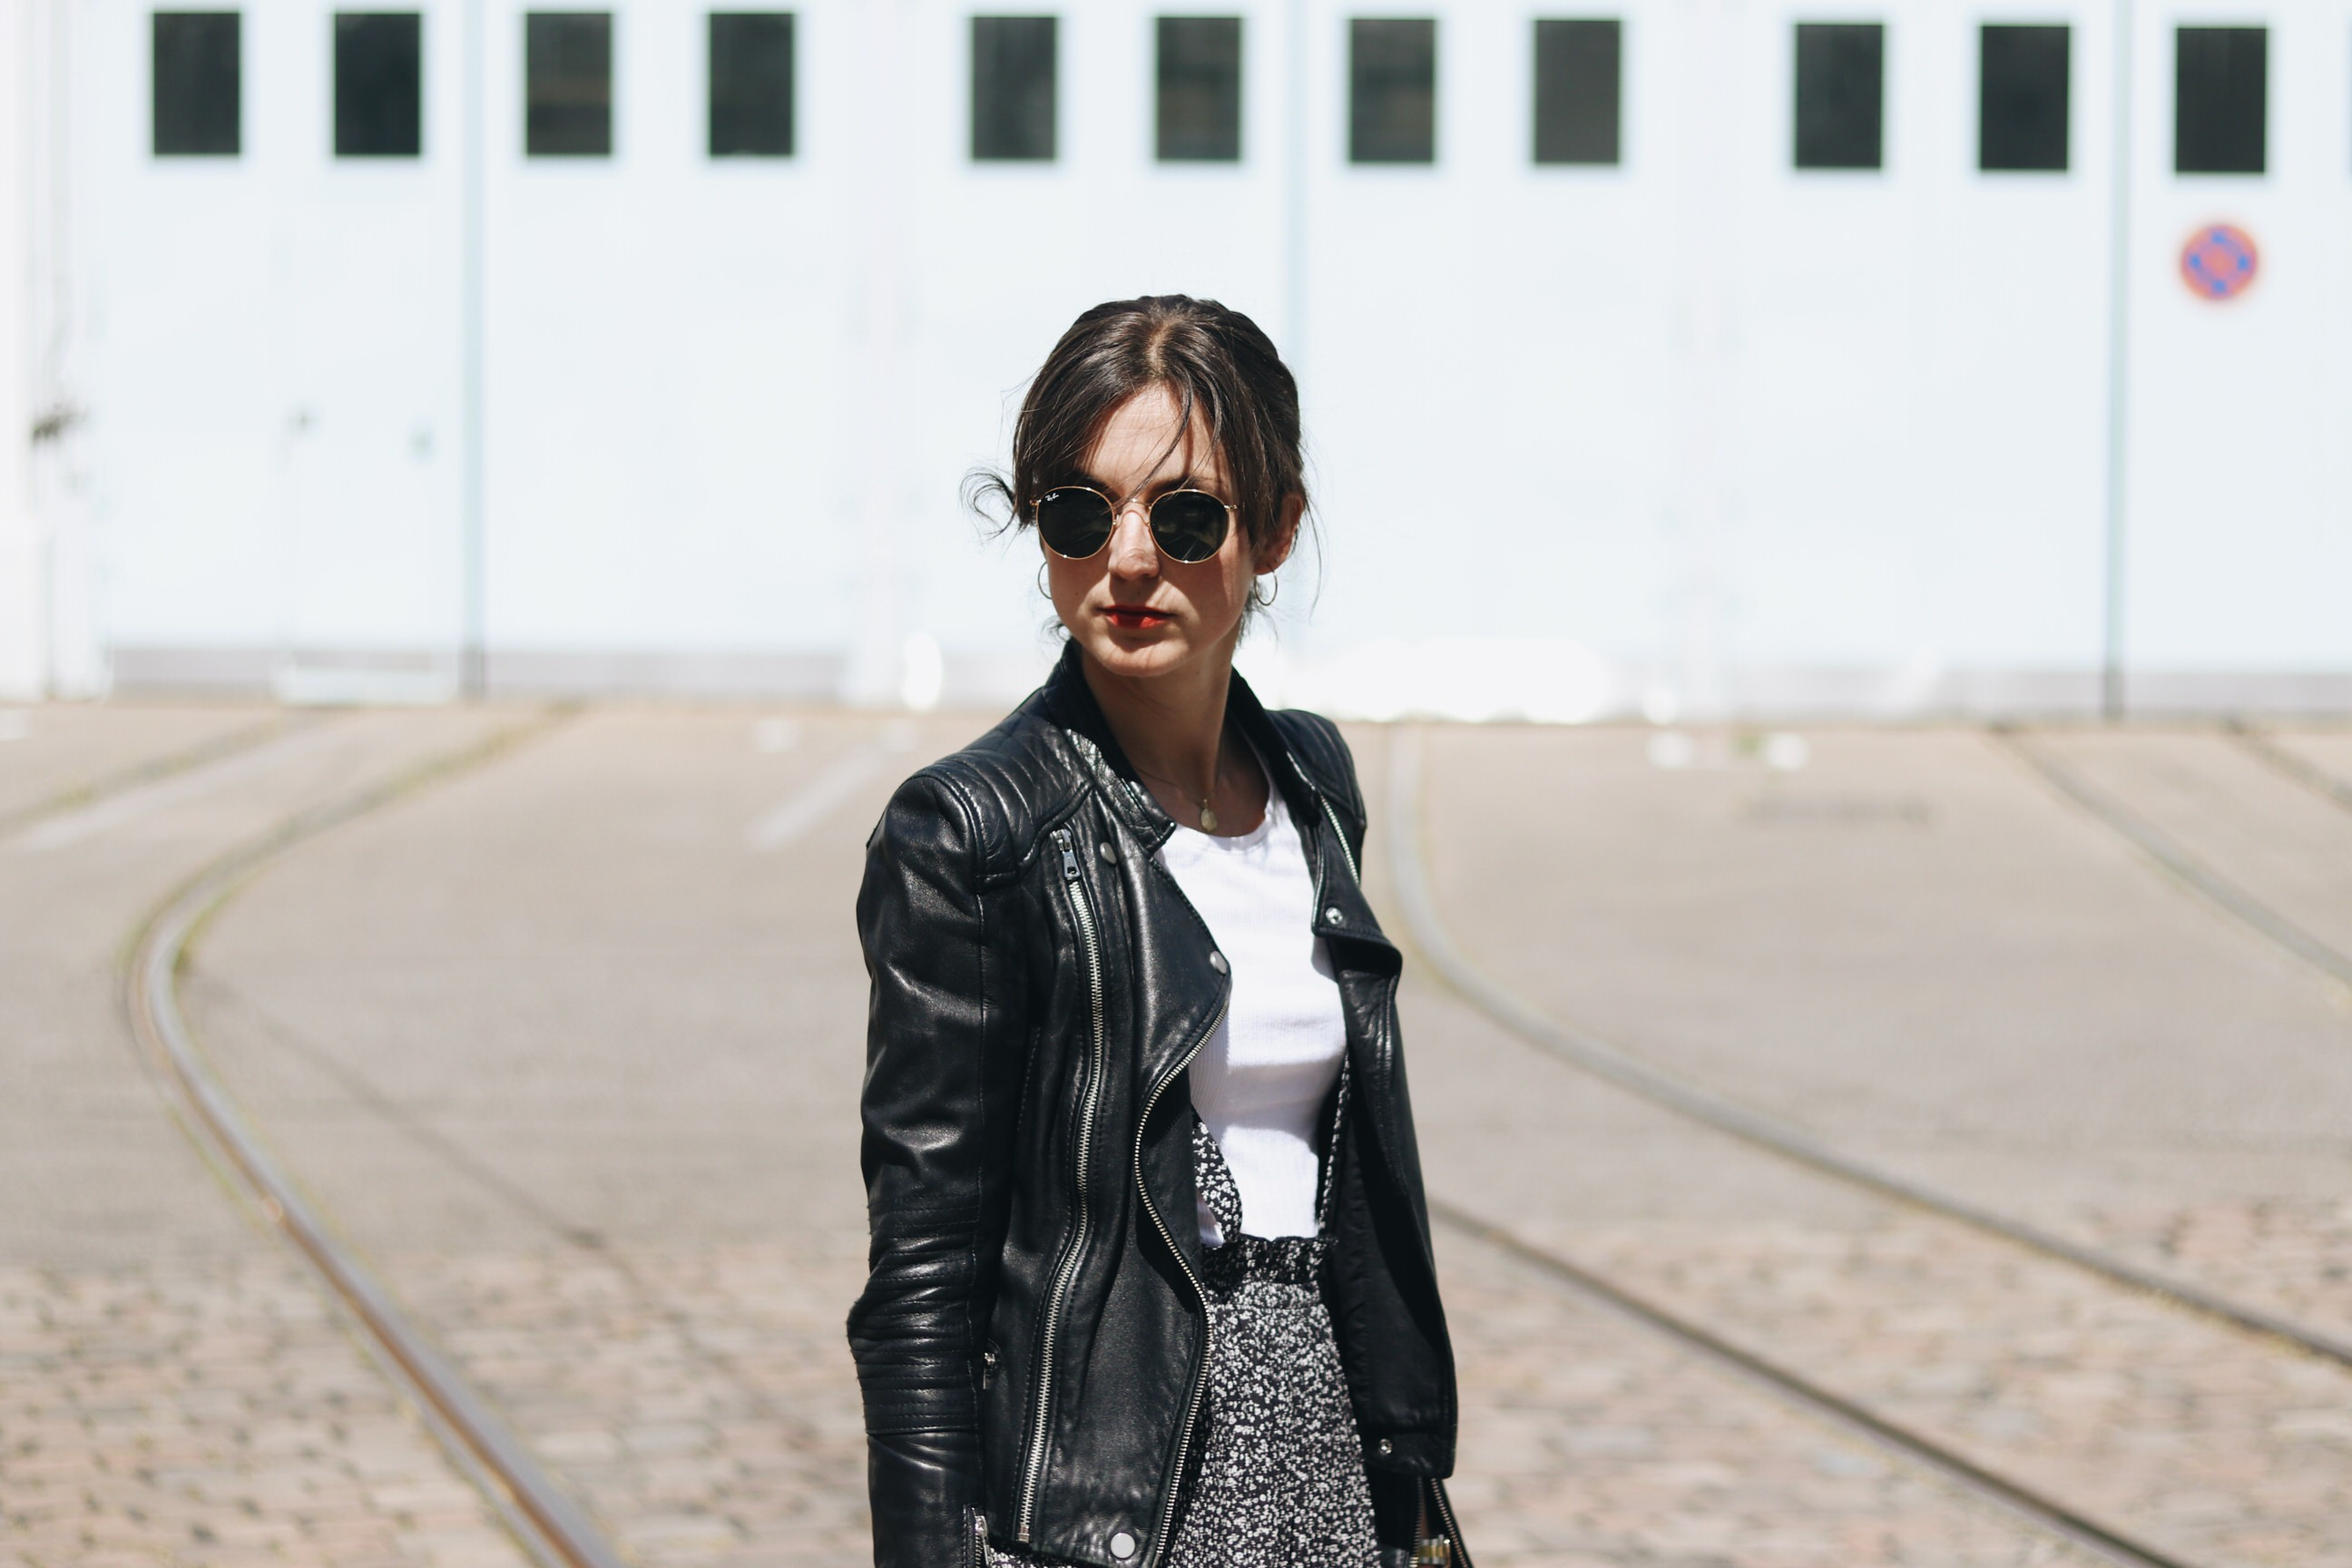 die besten Modeblogs Outfit Streetstyle Blogs Top 10 Sommer Look